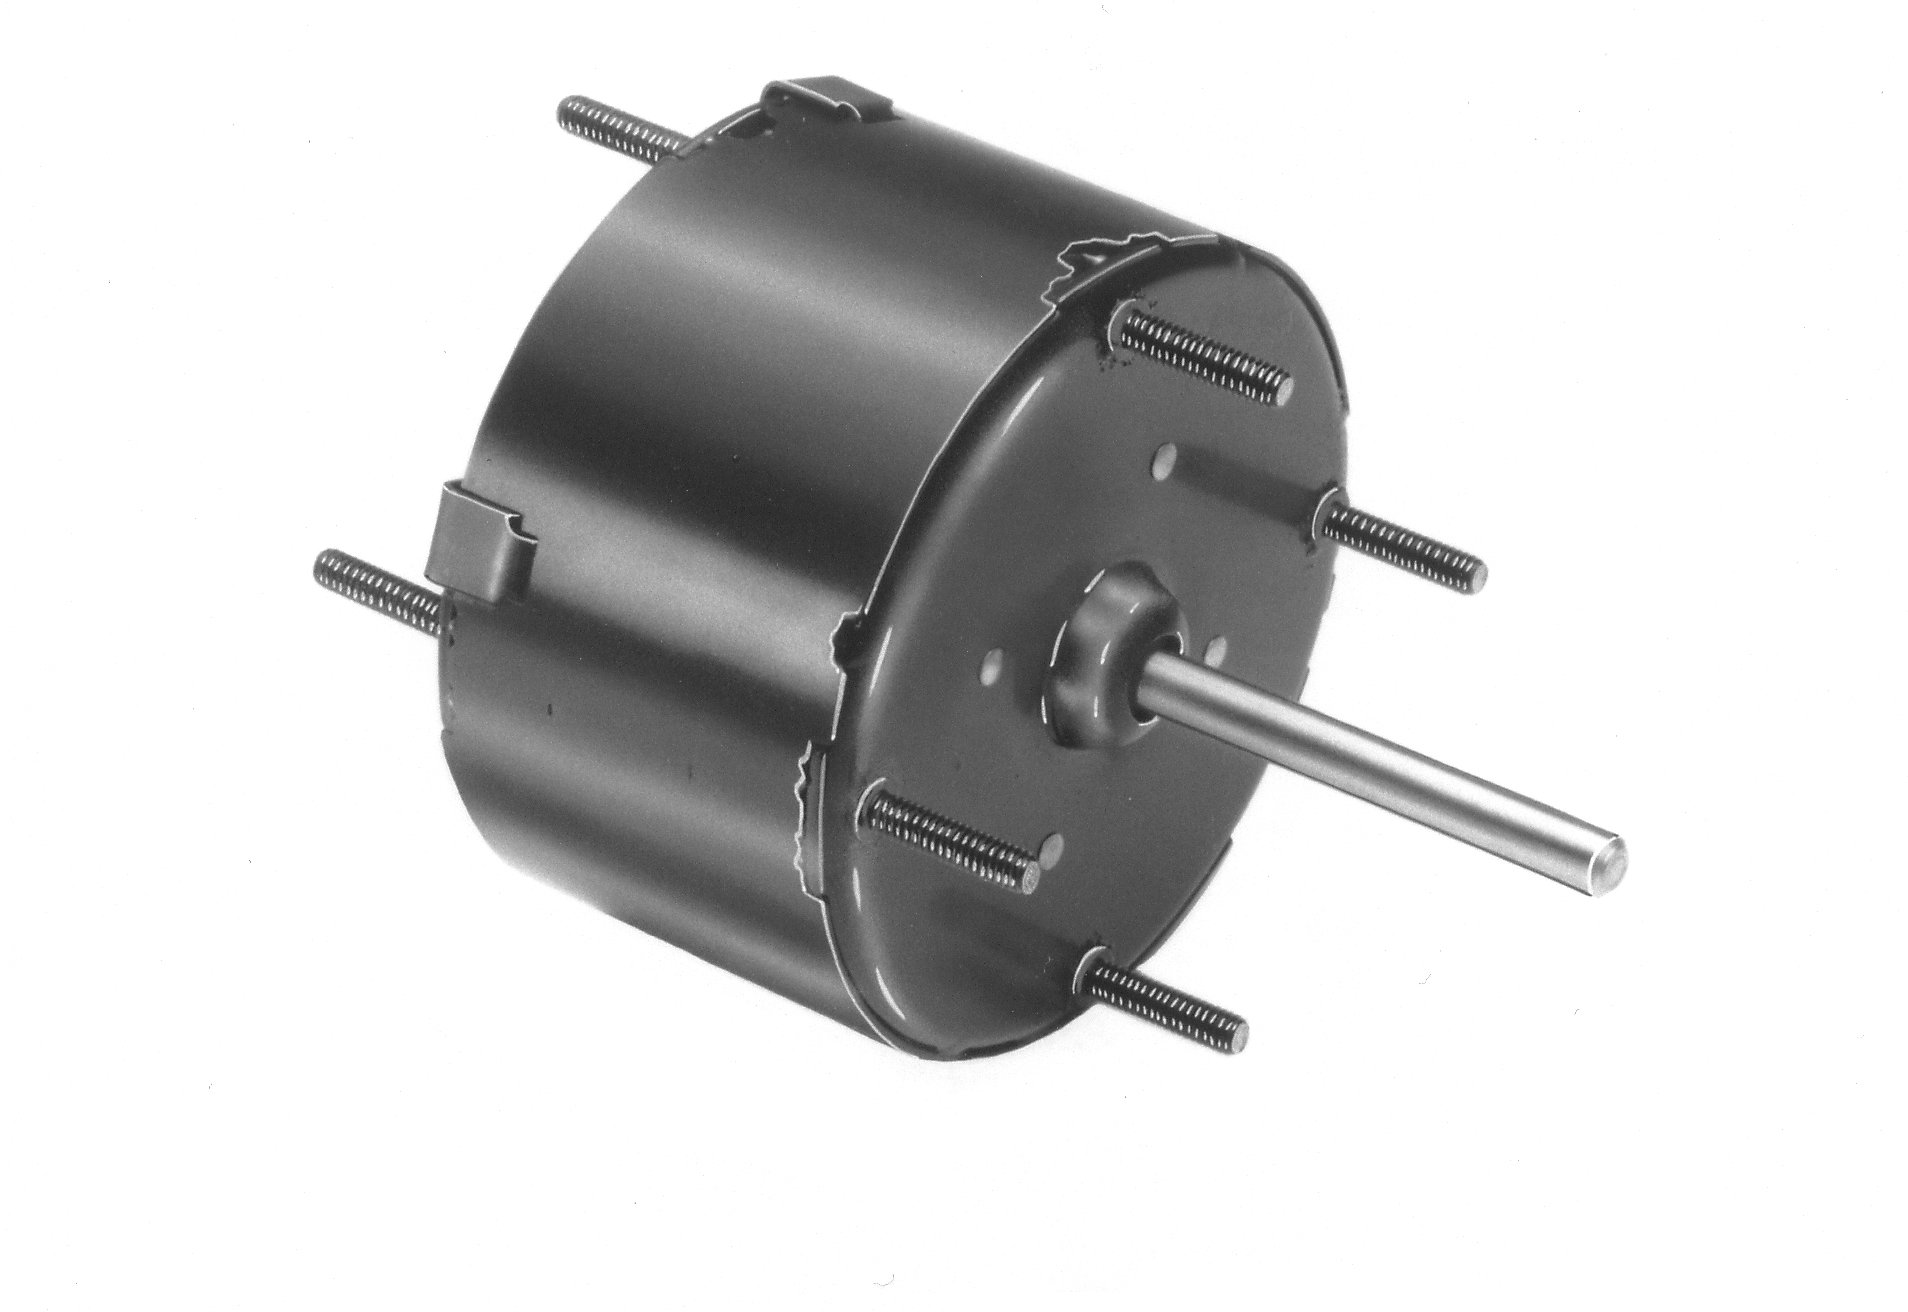 Fasco D123 3.3'' Frame Totally Enclosed Shaded Pole General Purpose Motor with Sleeve Bearing, 1/80HP, 1500rpm, 115V, 60Hz, 0.6 amps, CCW Rotation